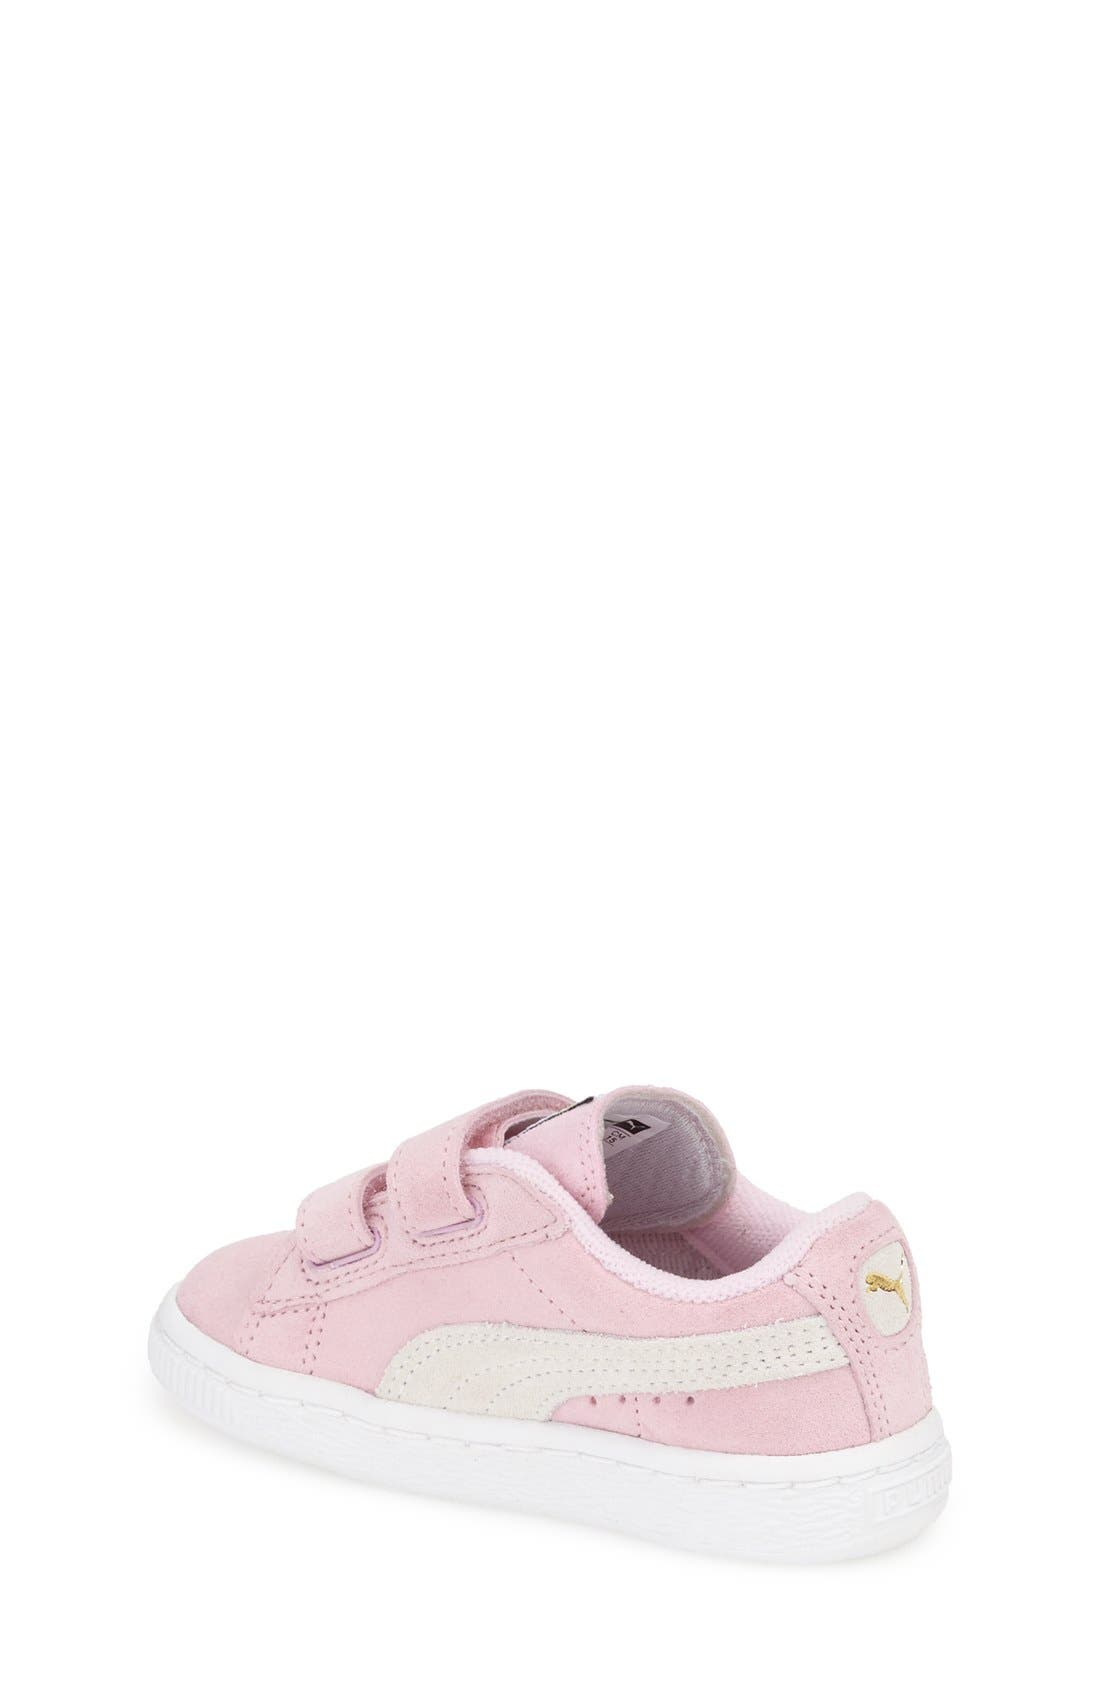 Suede Sneaker,                             Alternate thumbnail 2, color,                             Pink Lady/ Team Gold